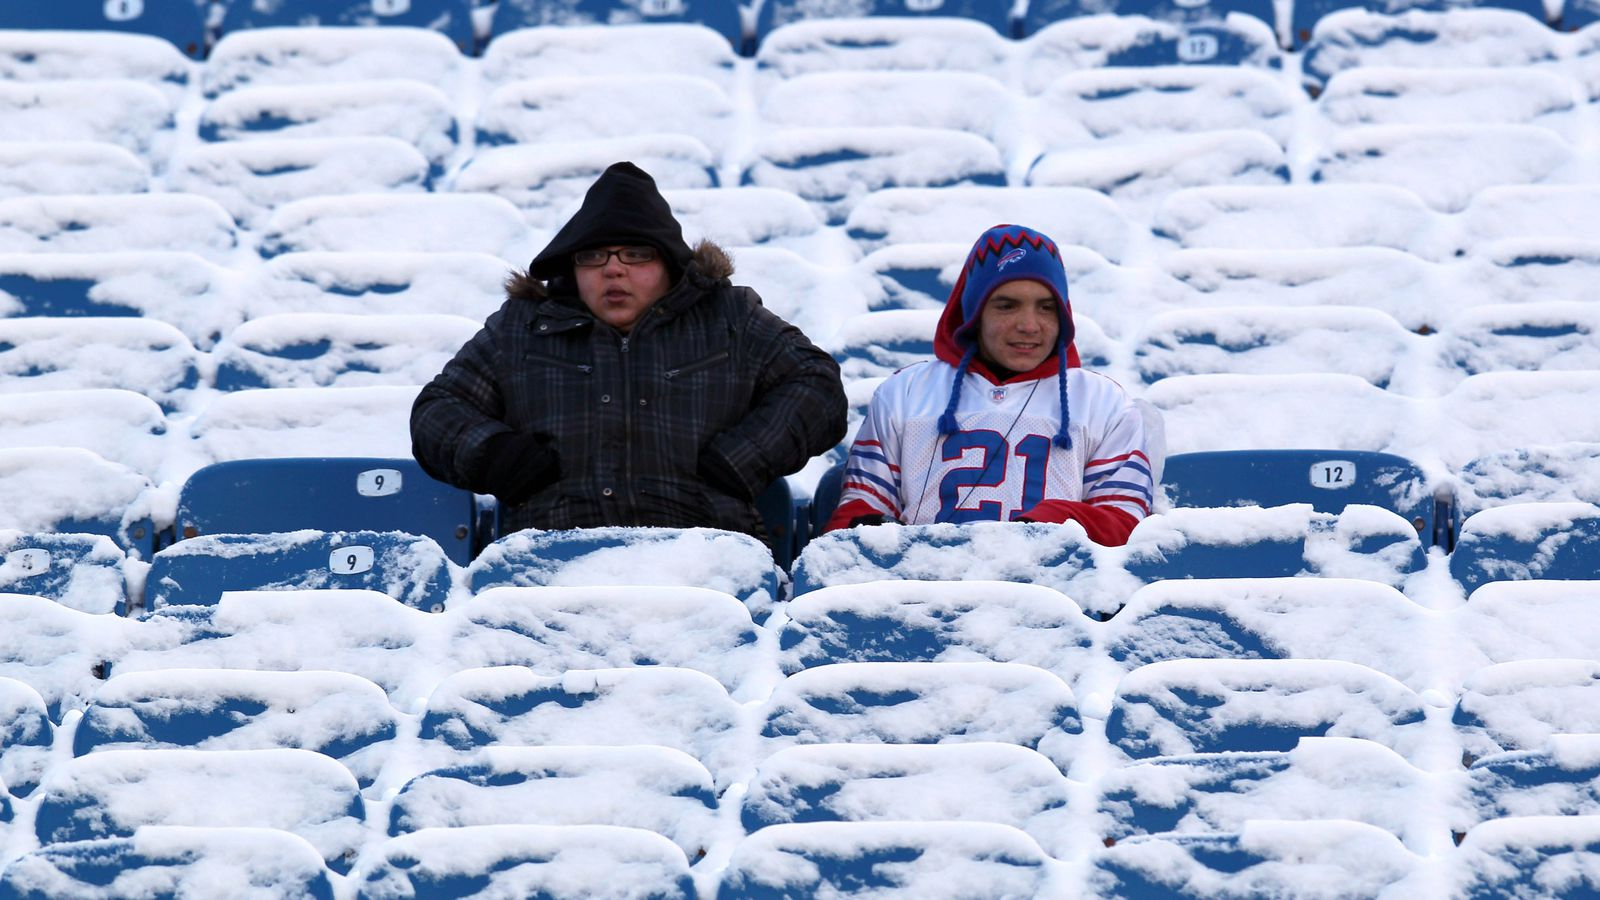 nfl weather forecast  week 14  winter storm affects